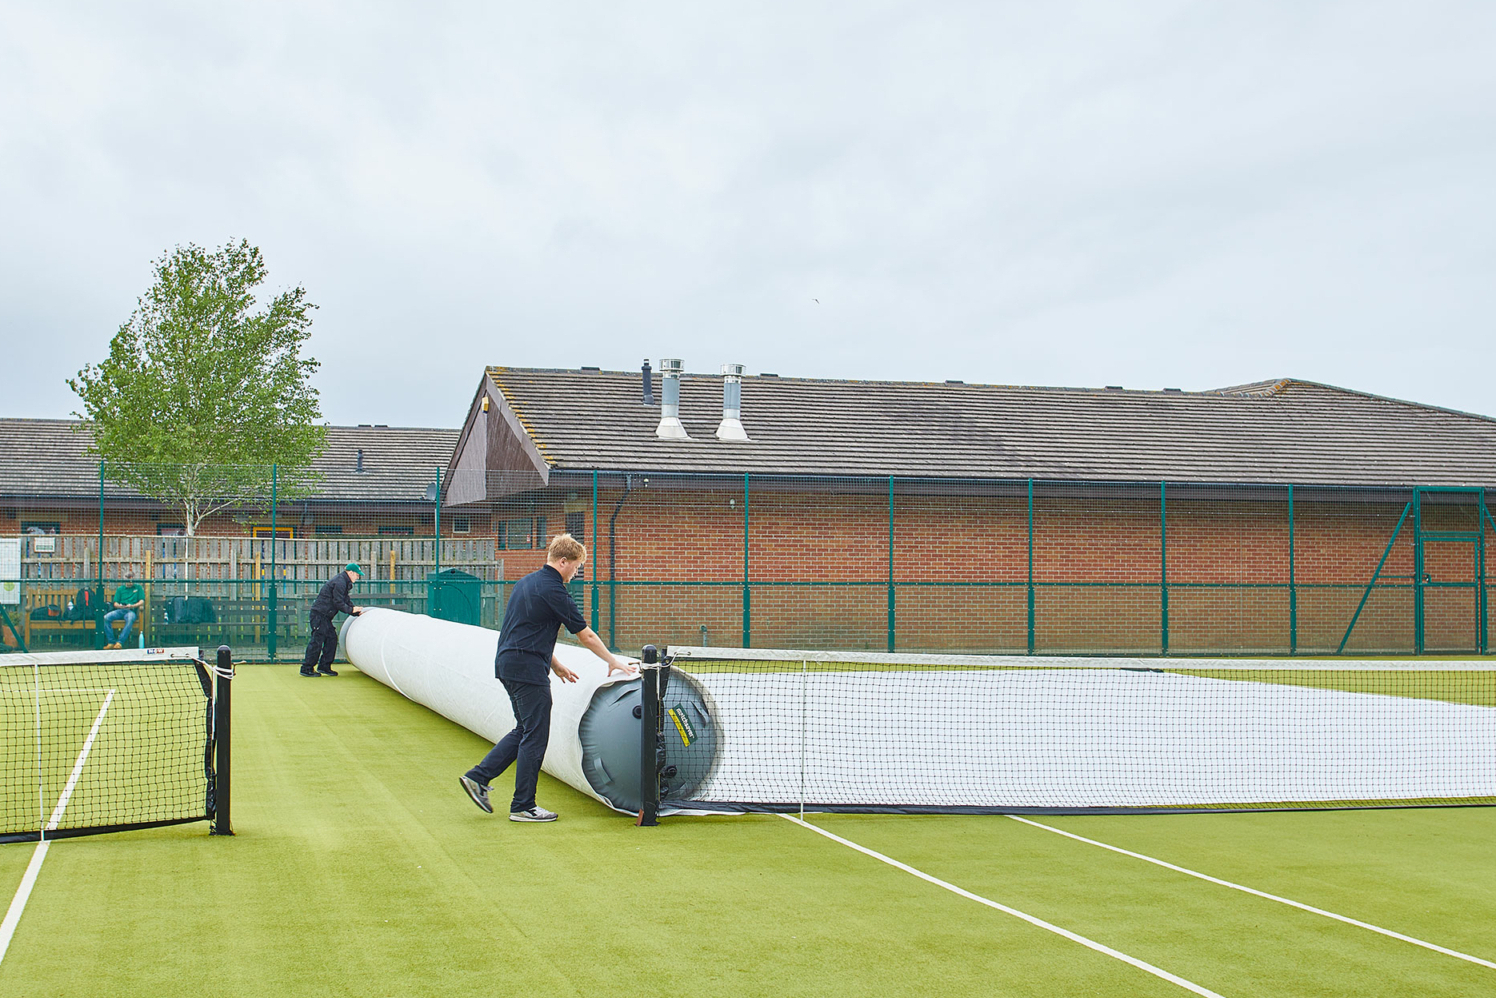 Matchsaver Air Roller Covers - Court Protection